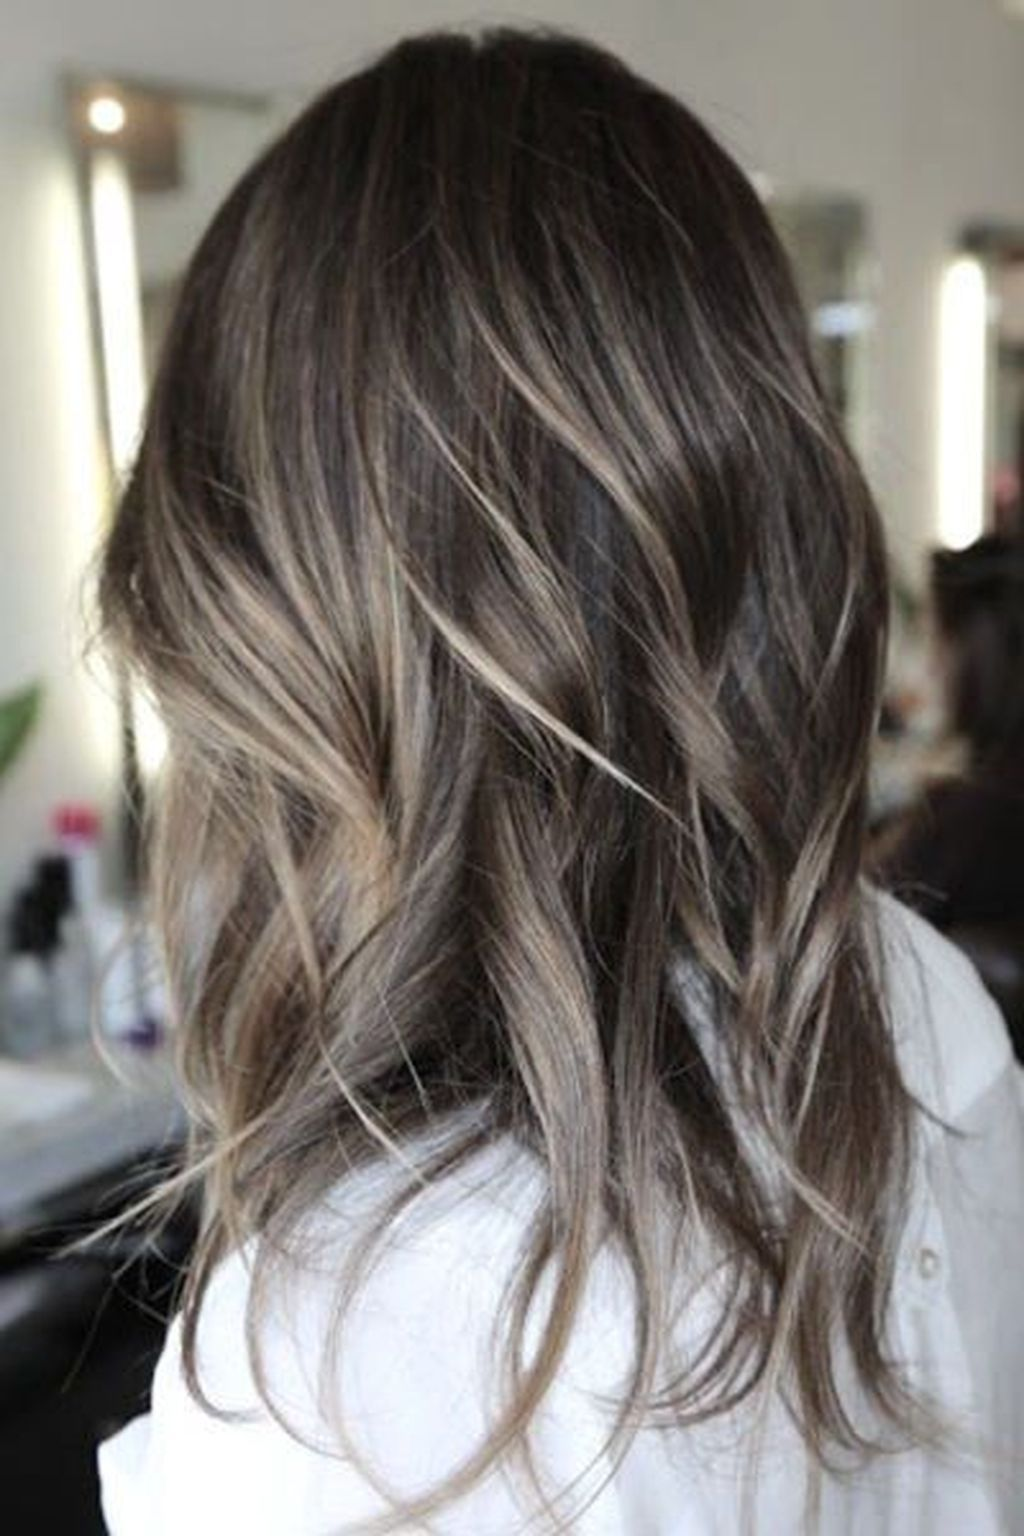 Pin By Karen Bellanceau On Hair In 2020 Ash Brown Hair Color